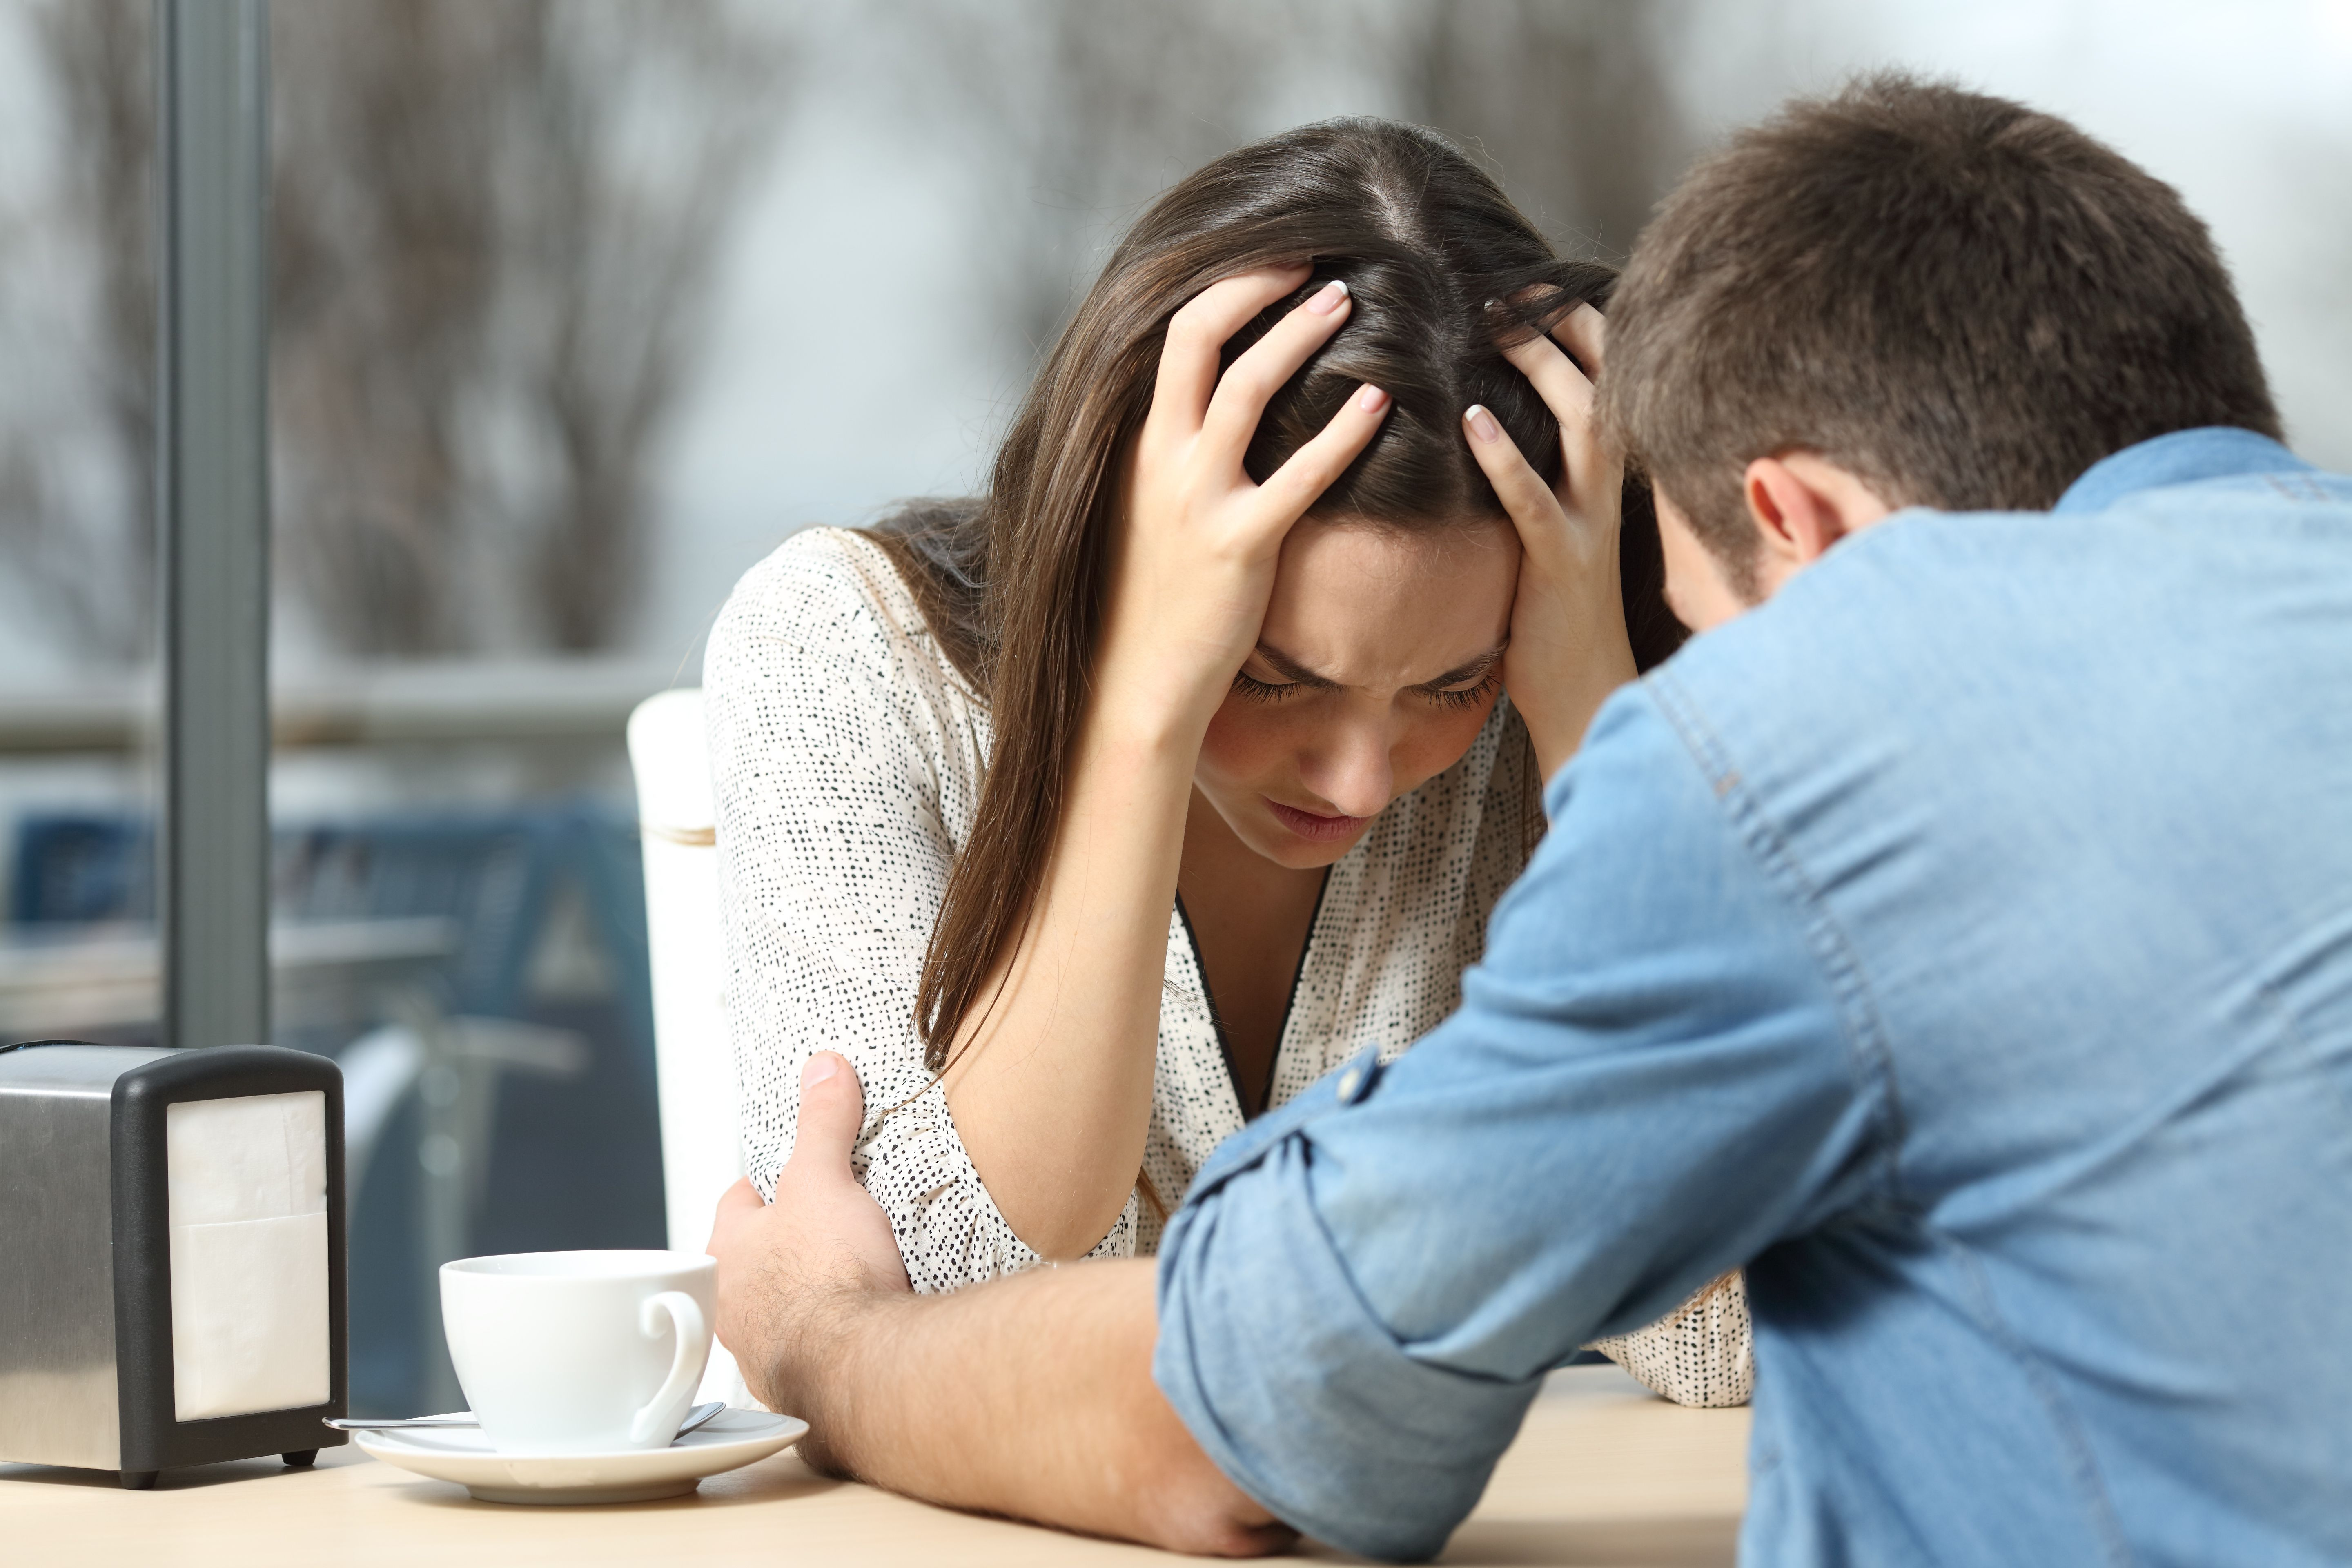 A couple fighting as they sort out their problems. | Source: Shutterstock